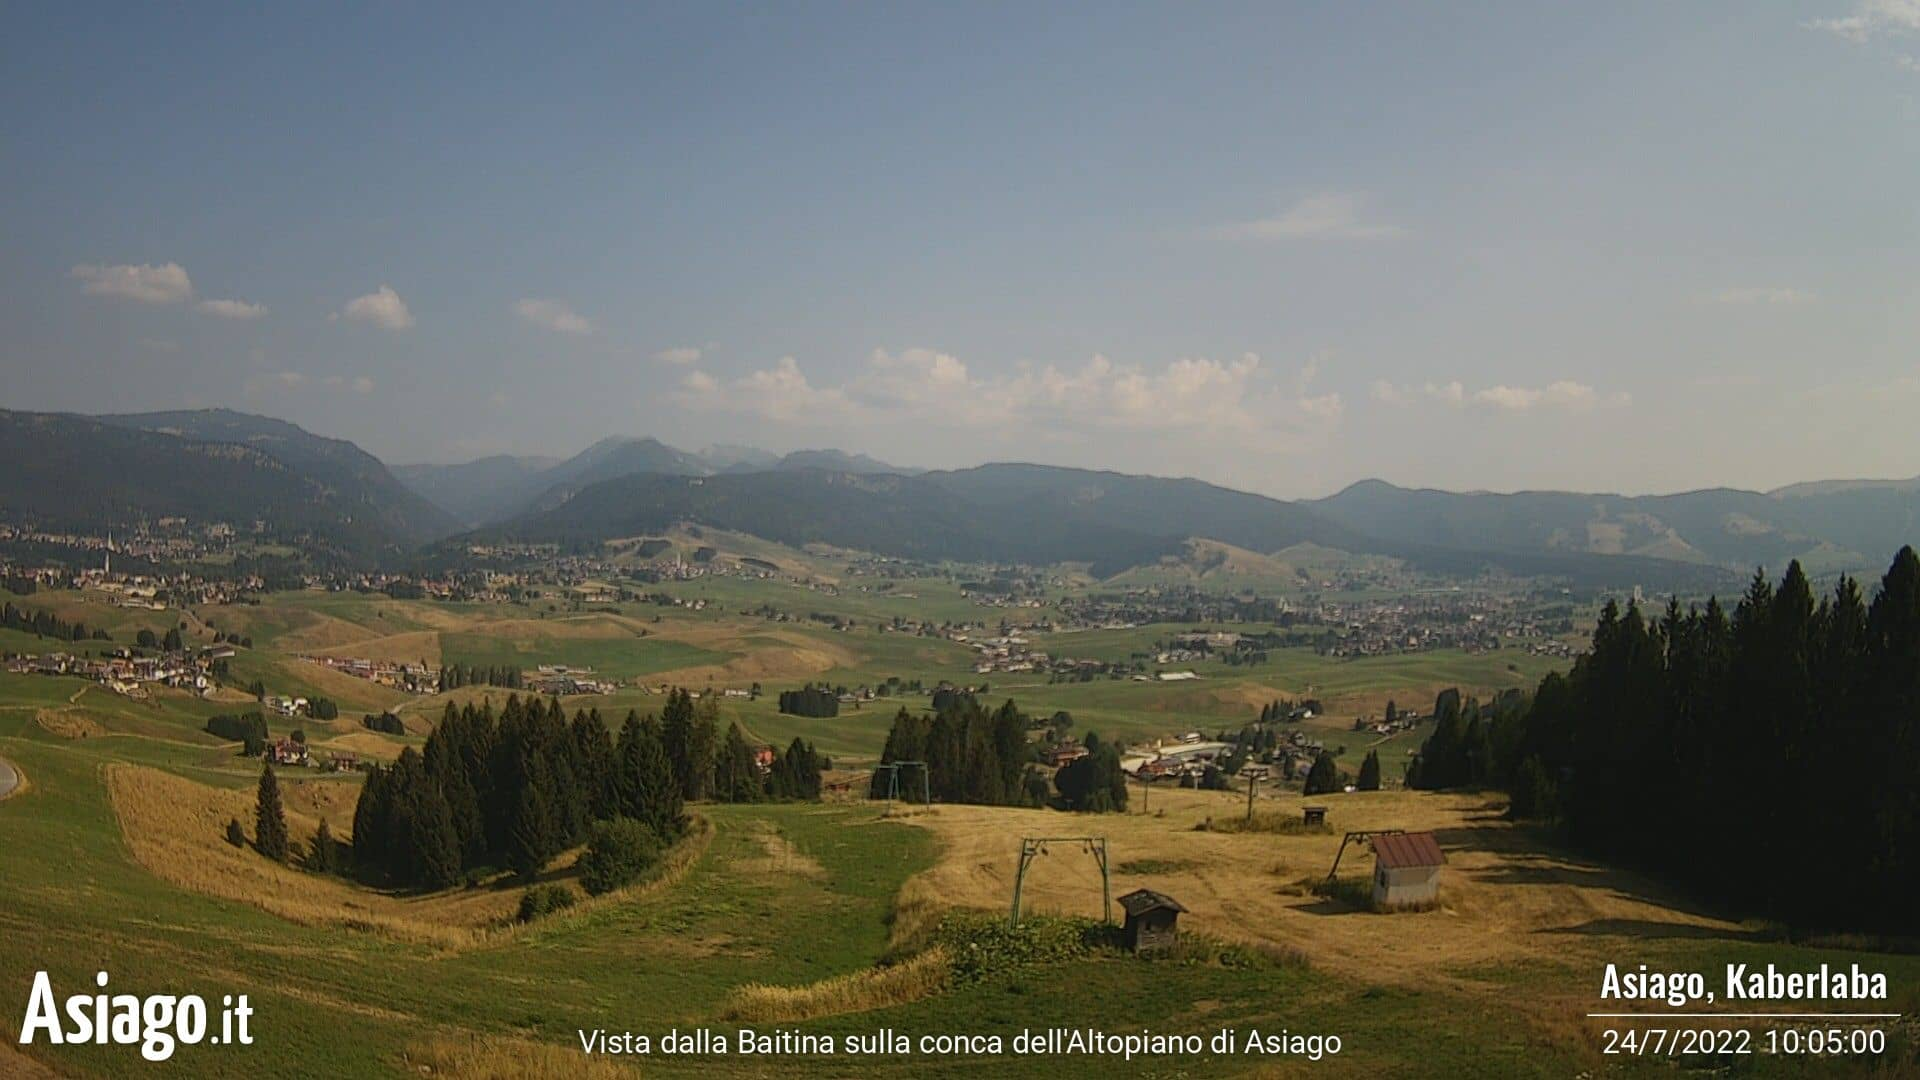 Live webcam from Baitina on the Asiago plateau